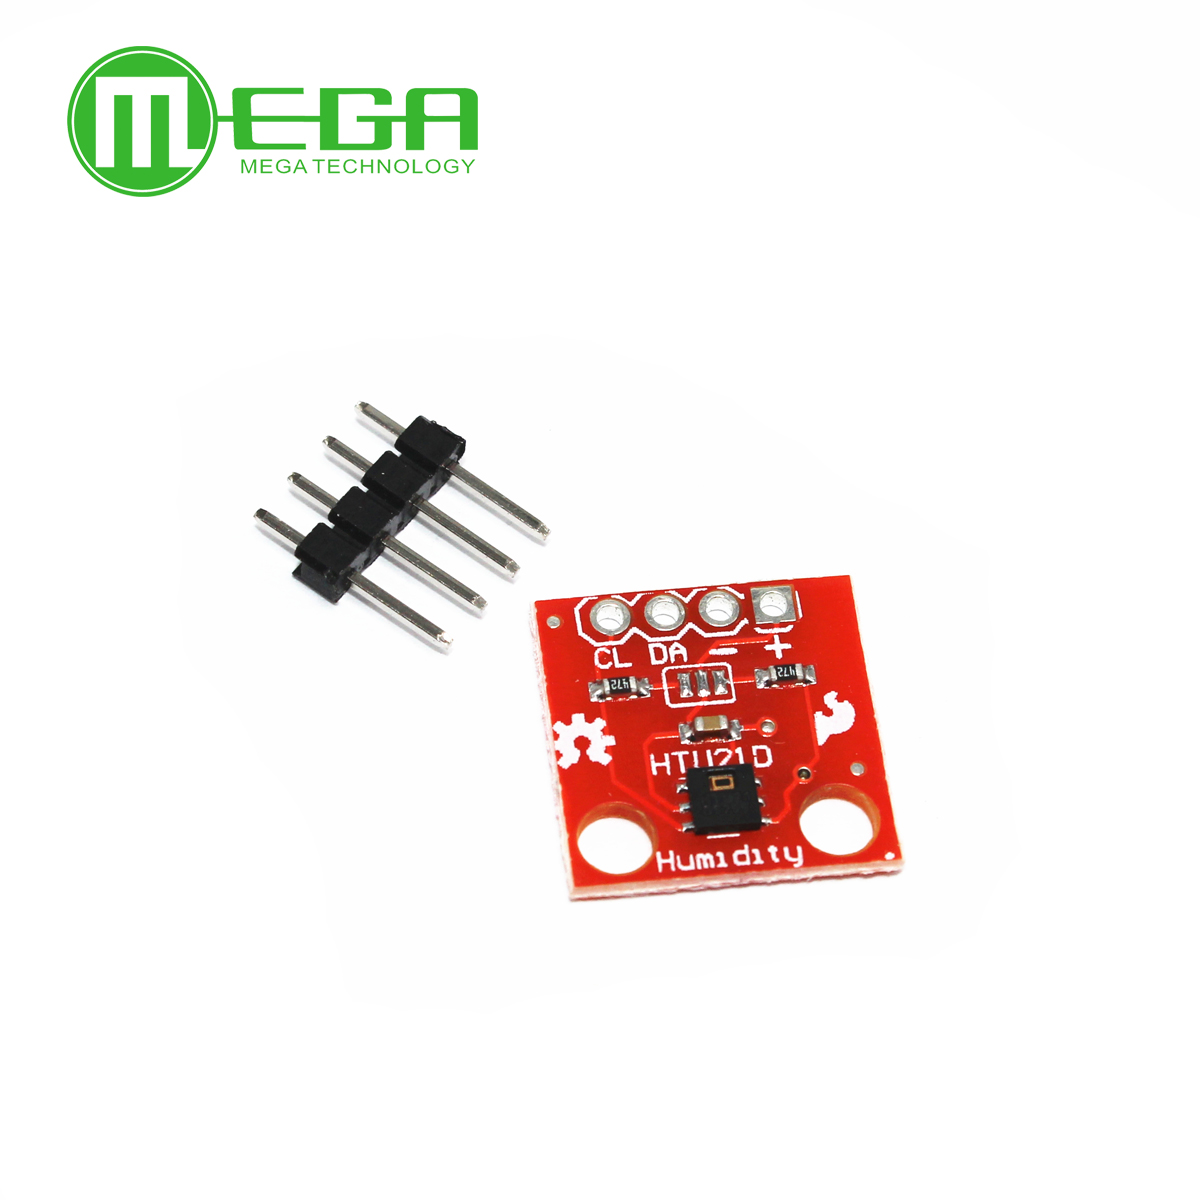 GY-213V-HTU21D HTU21D Temperature And Humidity Sensor Module Temperature Sensor